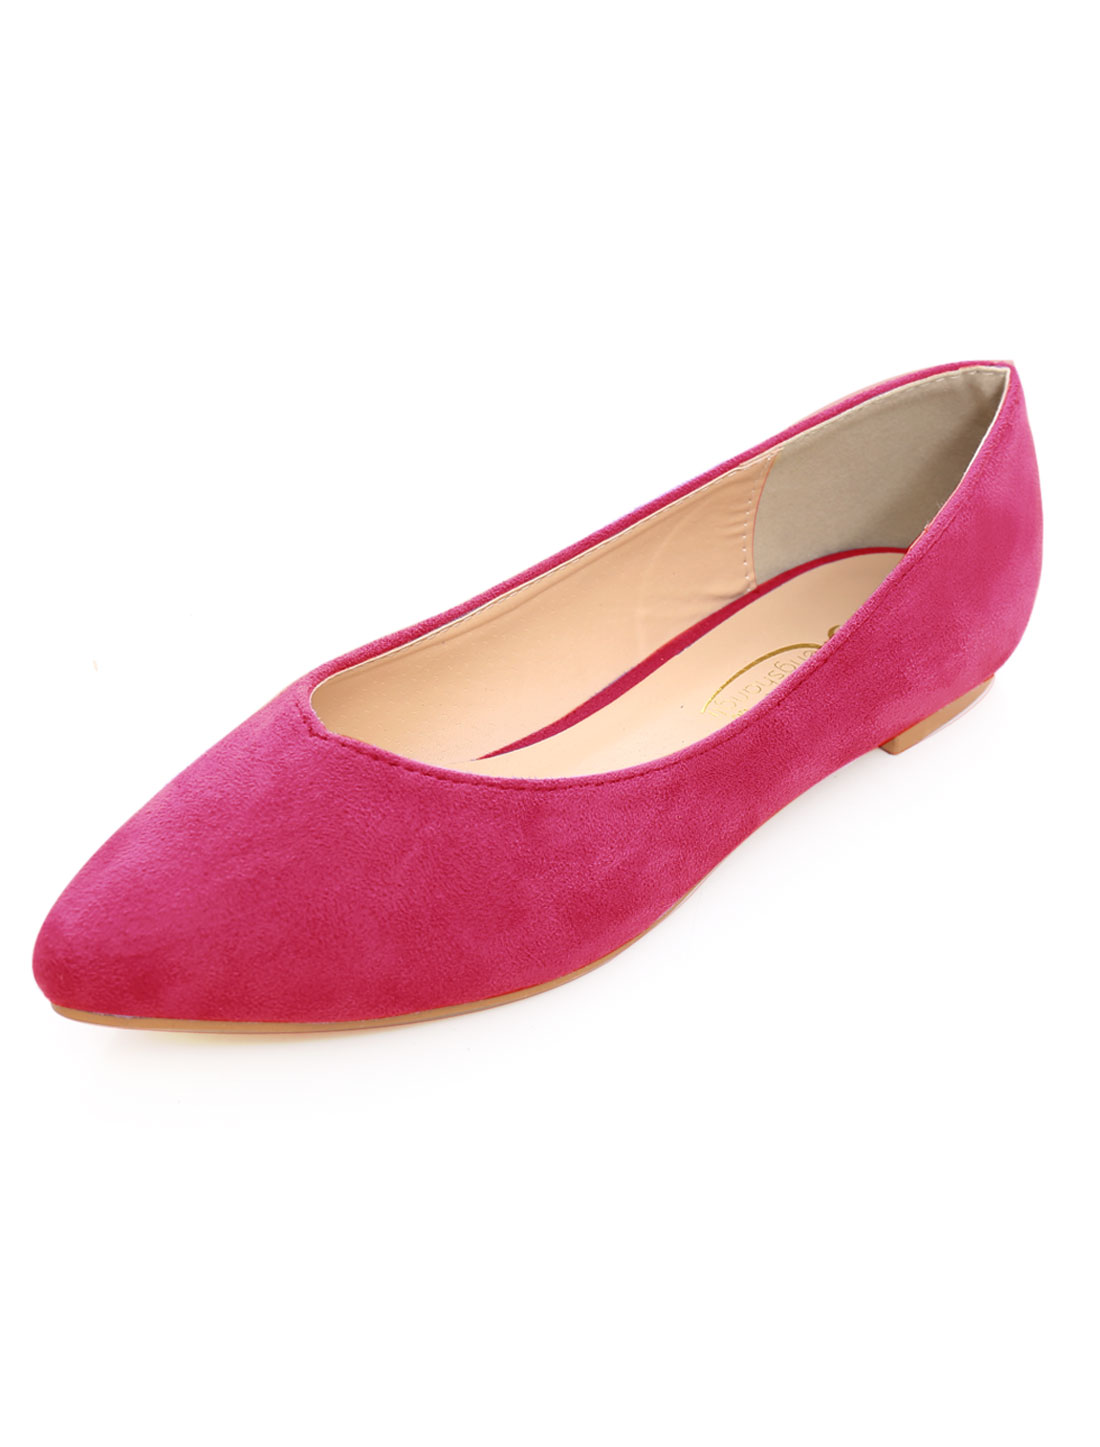 Woman V-Cut Vamp Pointed Slip On Padded Insole Flat Shoes Fuchsia 9